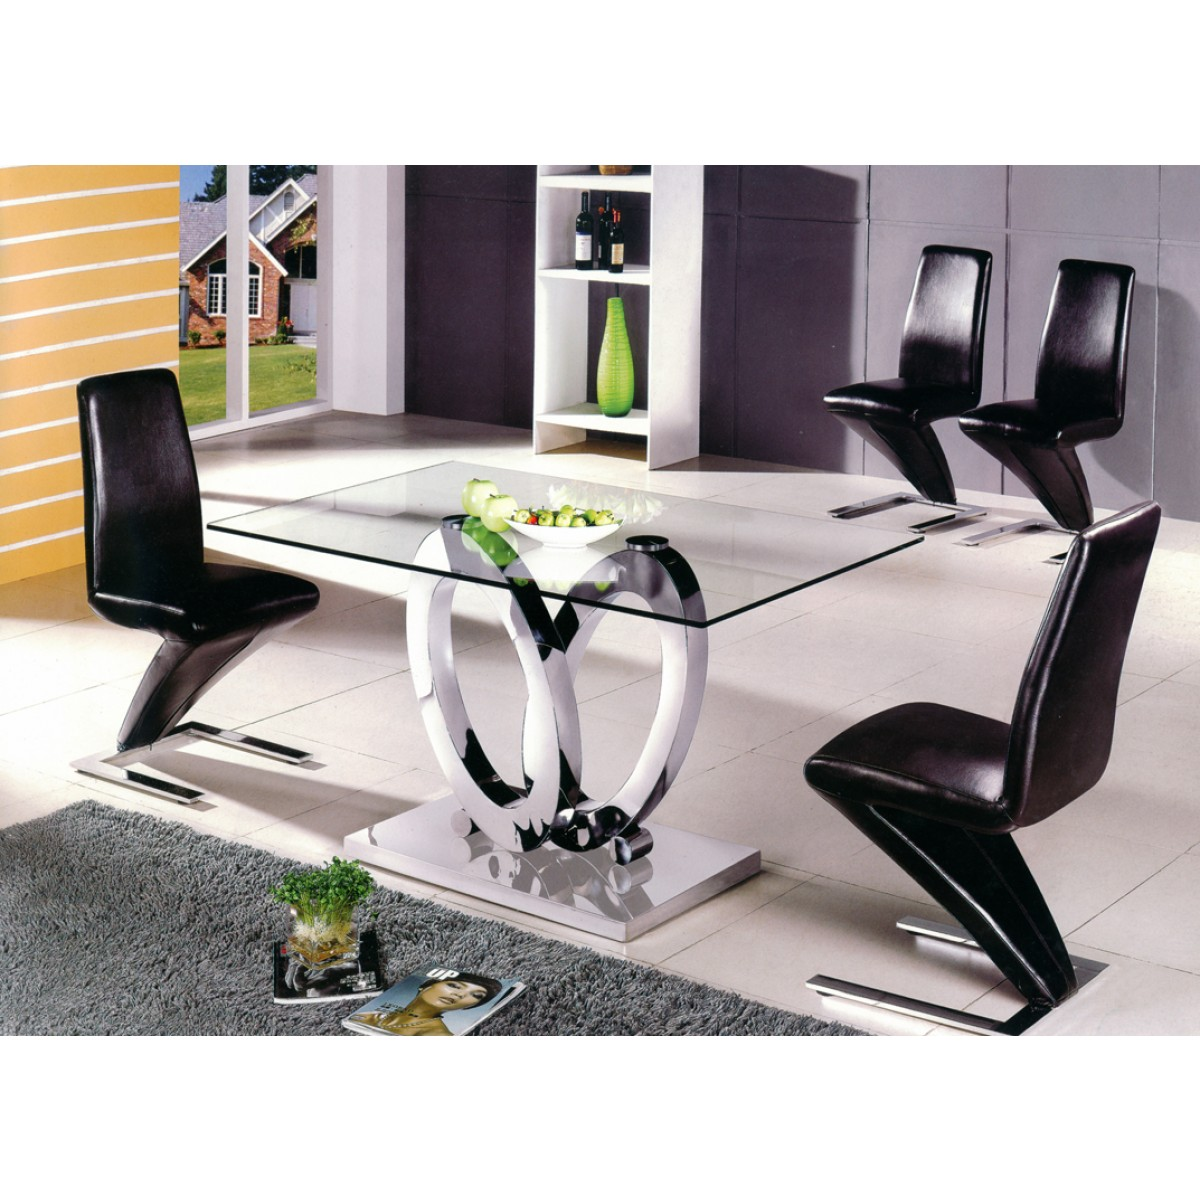 table manger design ellipse taille au choix. Black Bedroom Furniture Sets. Home Design Ideas